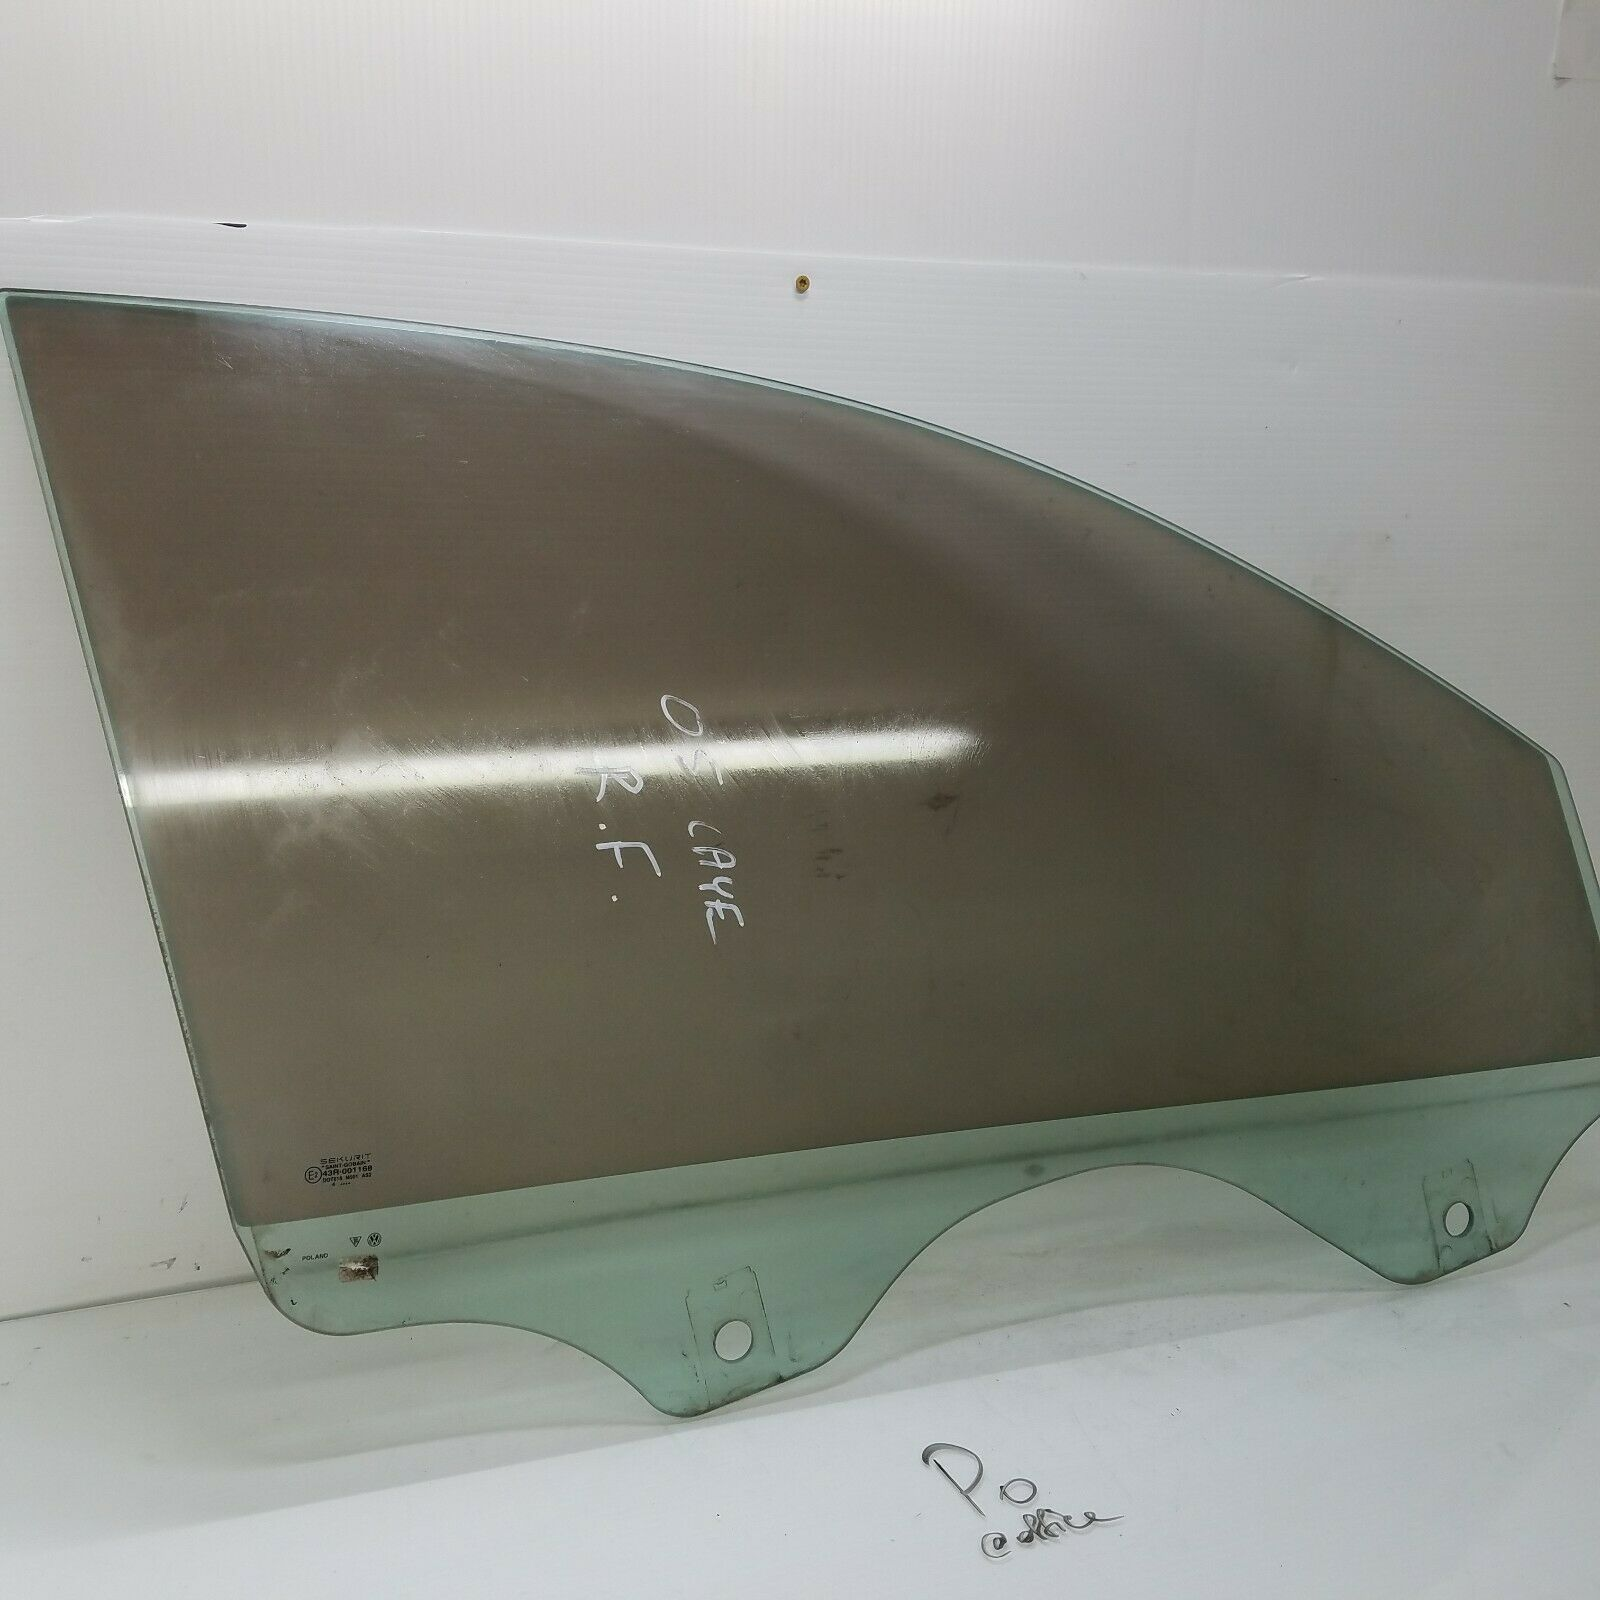 2003-2006 PORSCHE CAYENNE RIGHT FRONT PASSENGER DOOR WINDOW GLASS OEM 43R-001168 Does not apply Po Cay